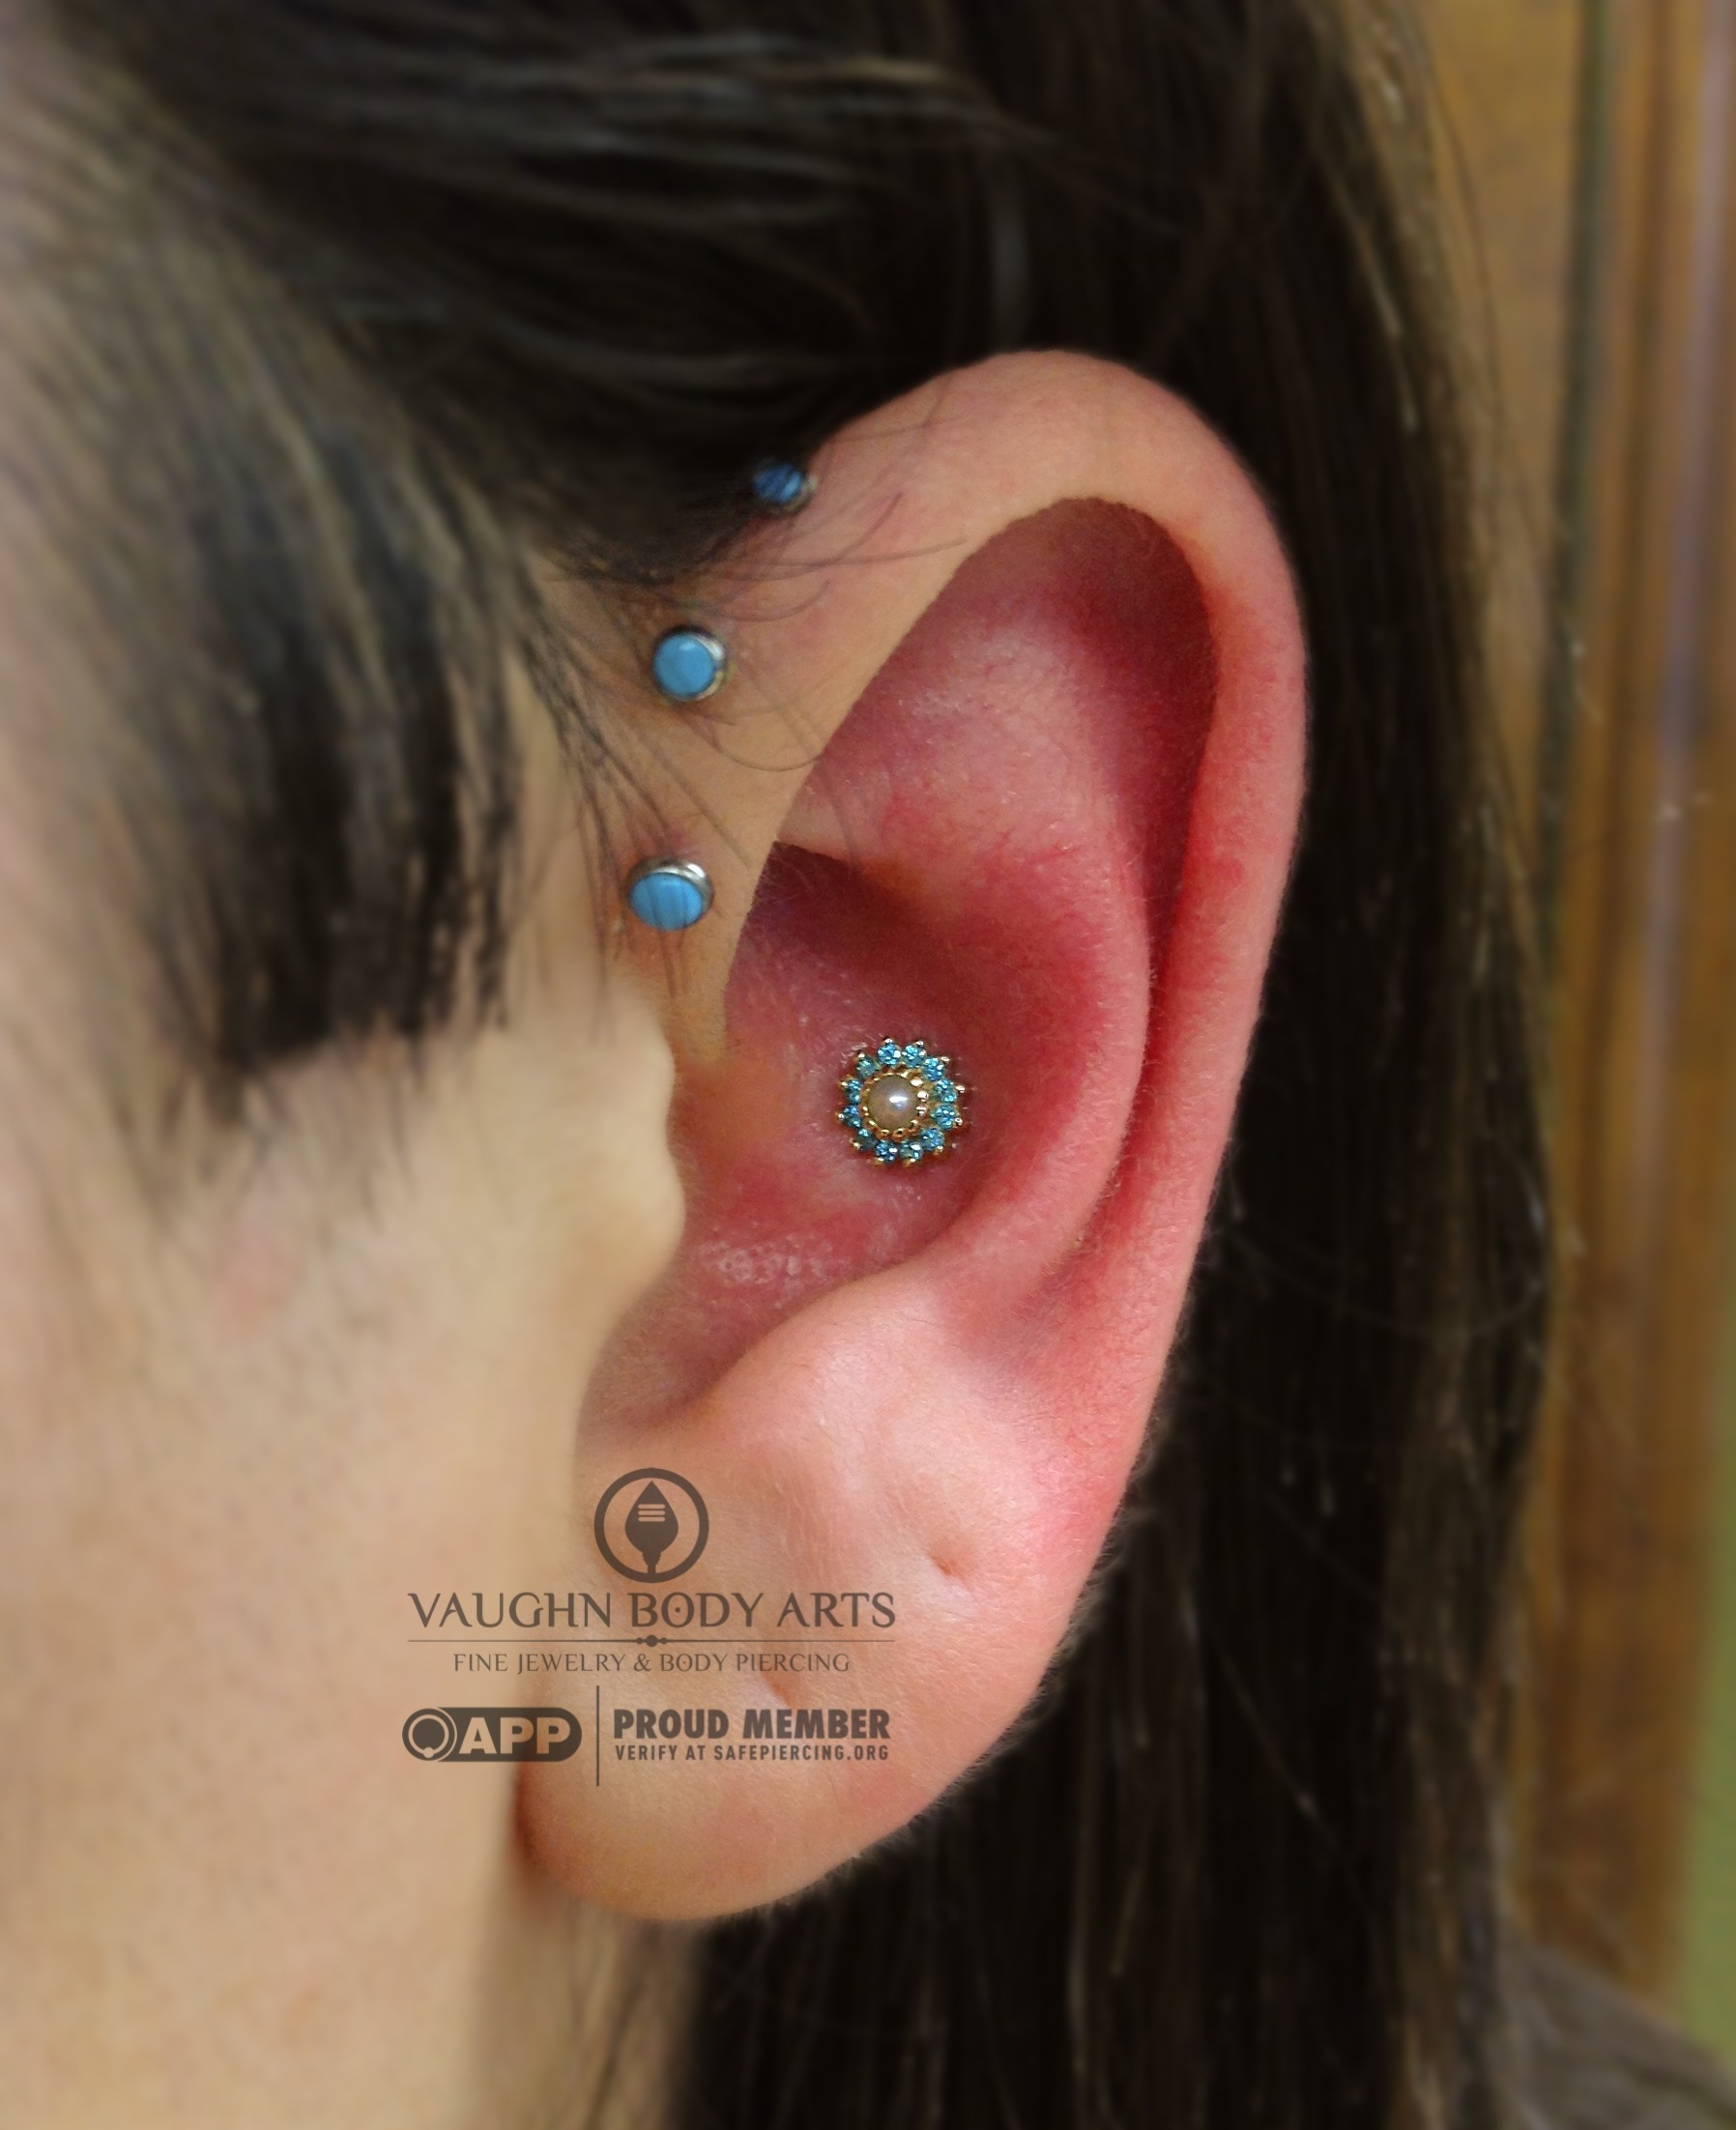 """Conch piercing with a 14k yellow gold """"Rose"""" end featuring mint green cz's and a genuine pearl from BVLA."""